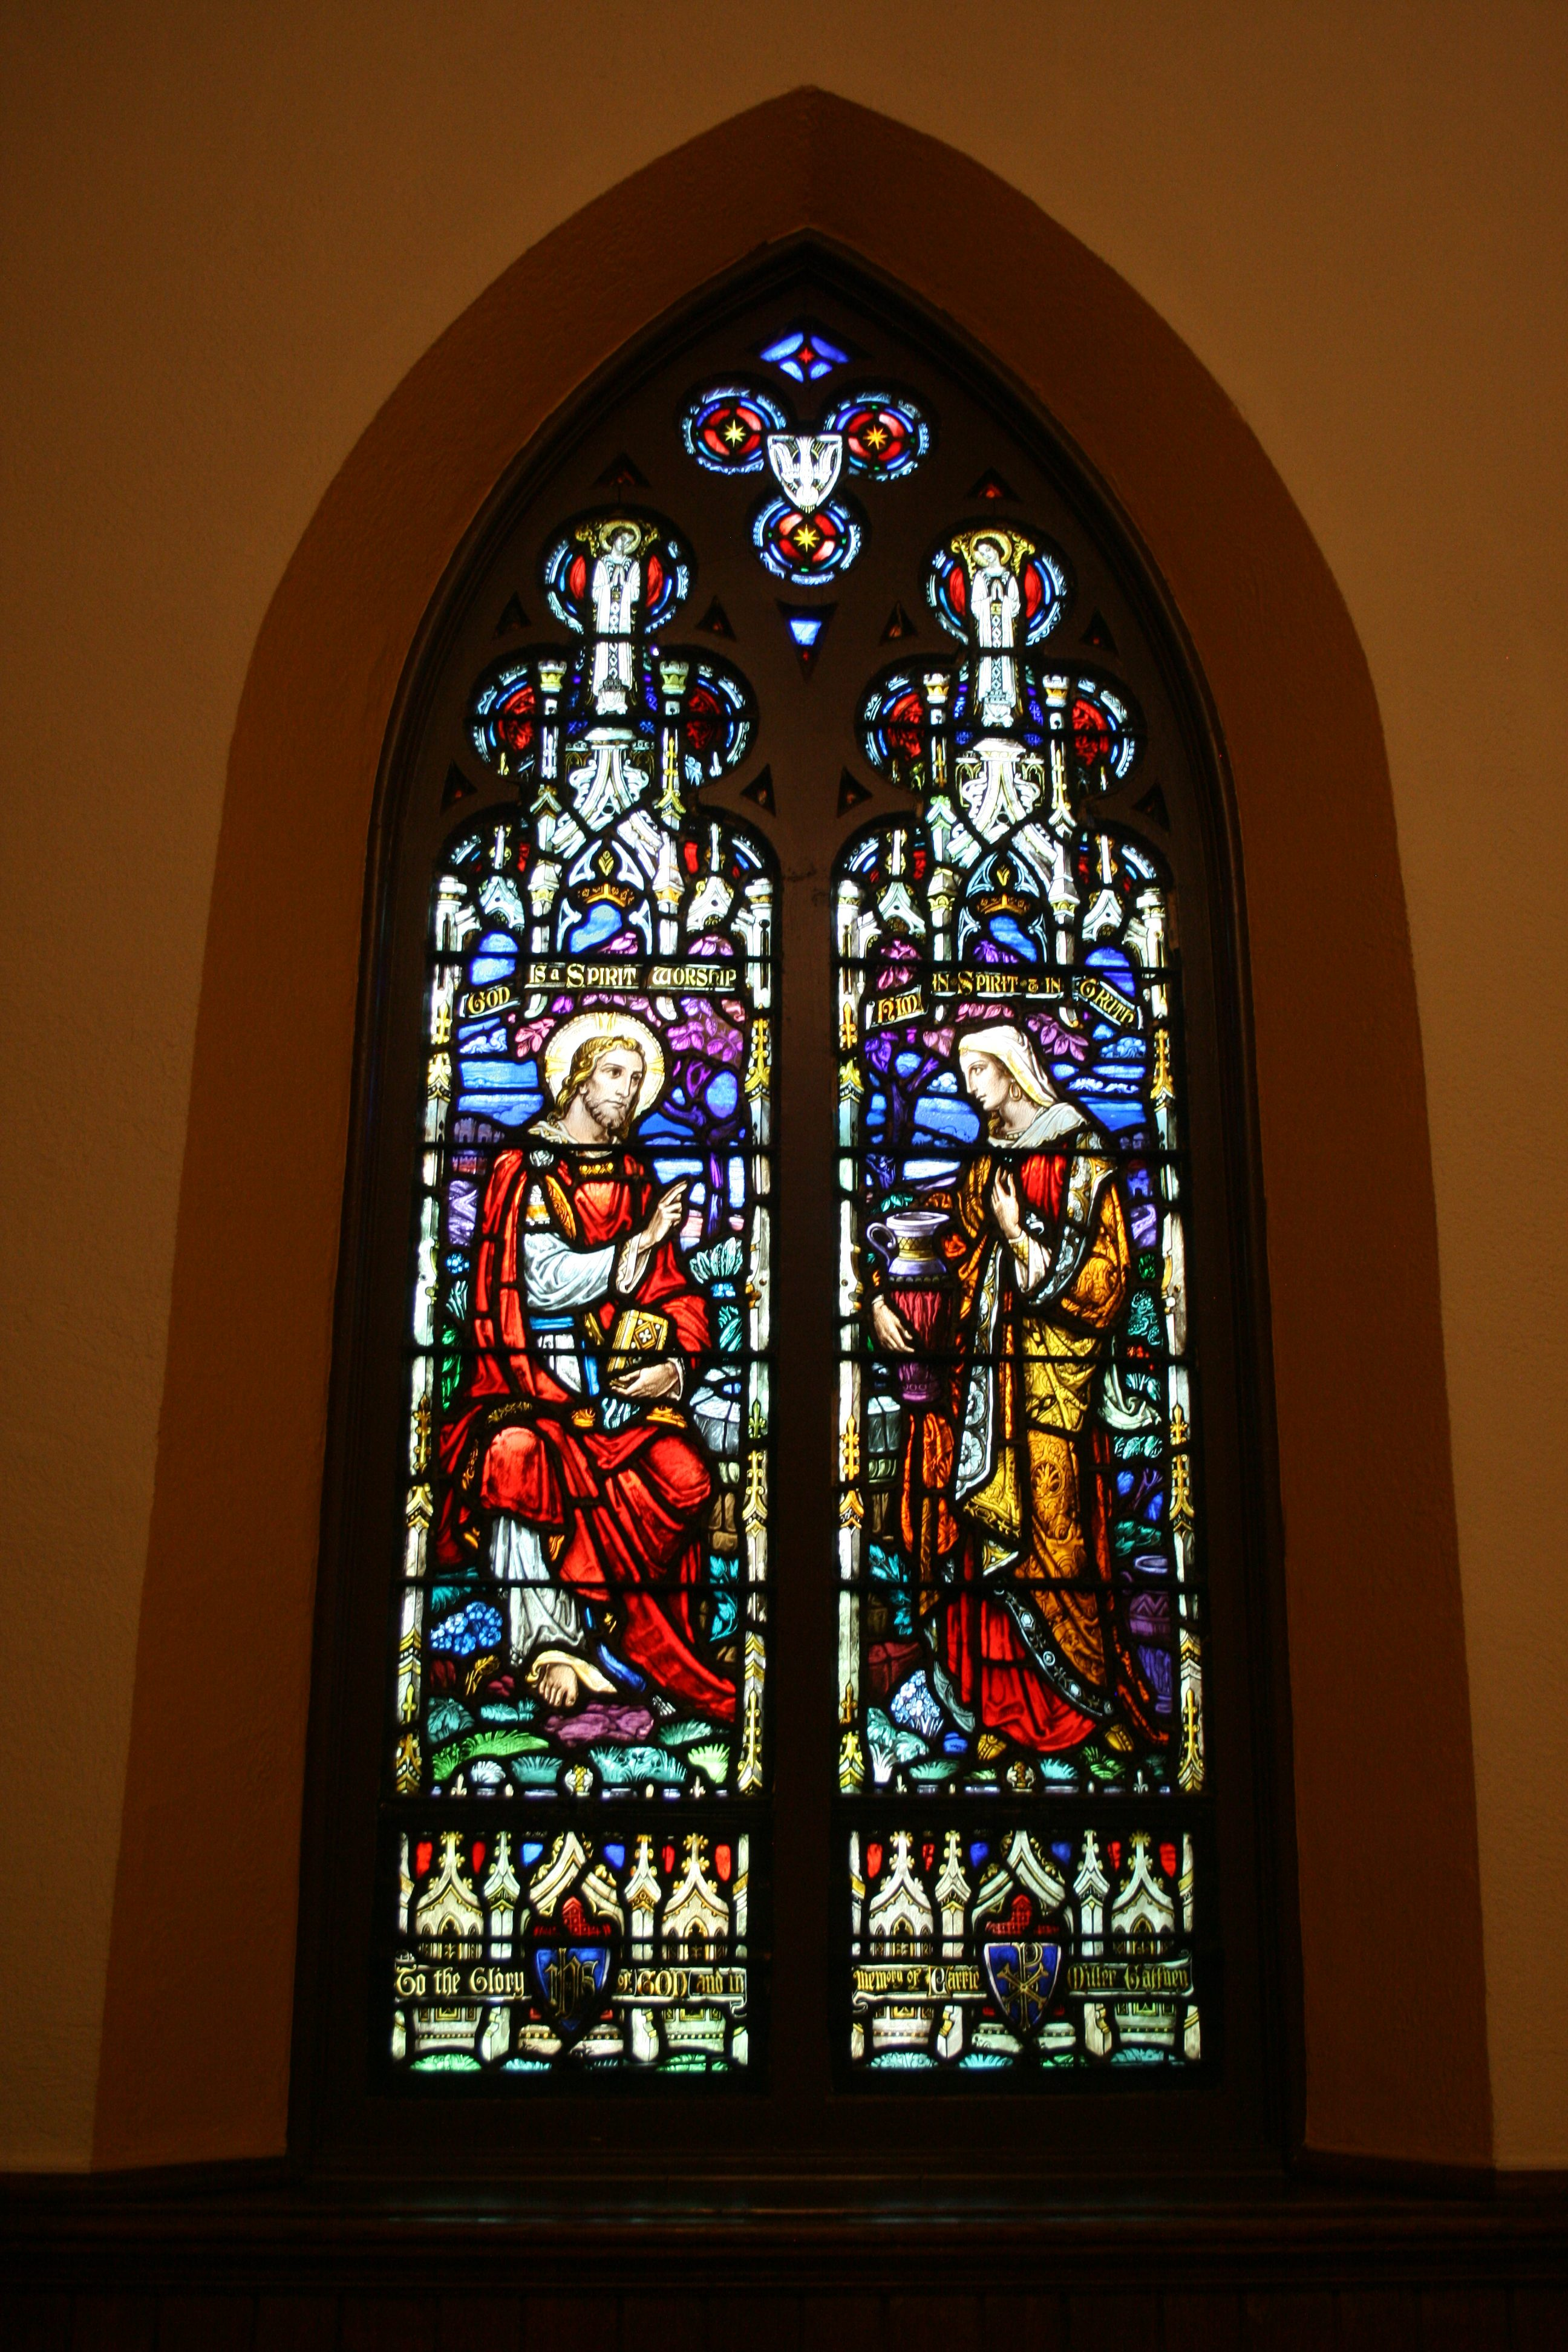 The window directly to the left of the Whitefriars window. This window, and many others in the church, were designed by Nicola D'Ascenzo.